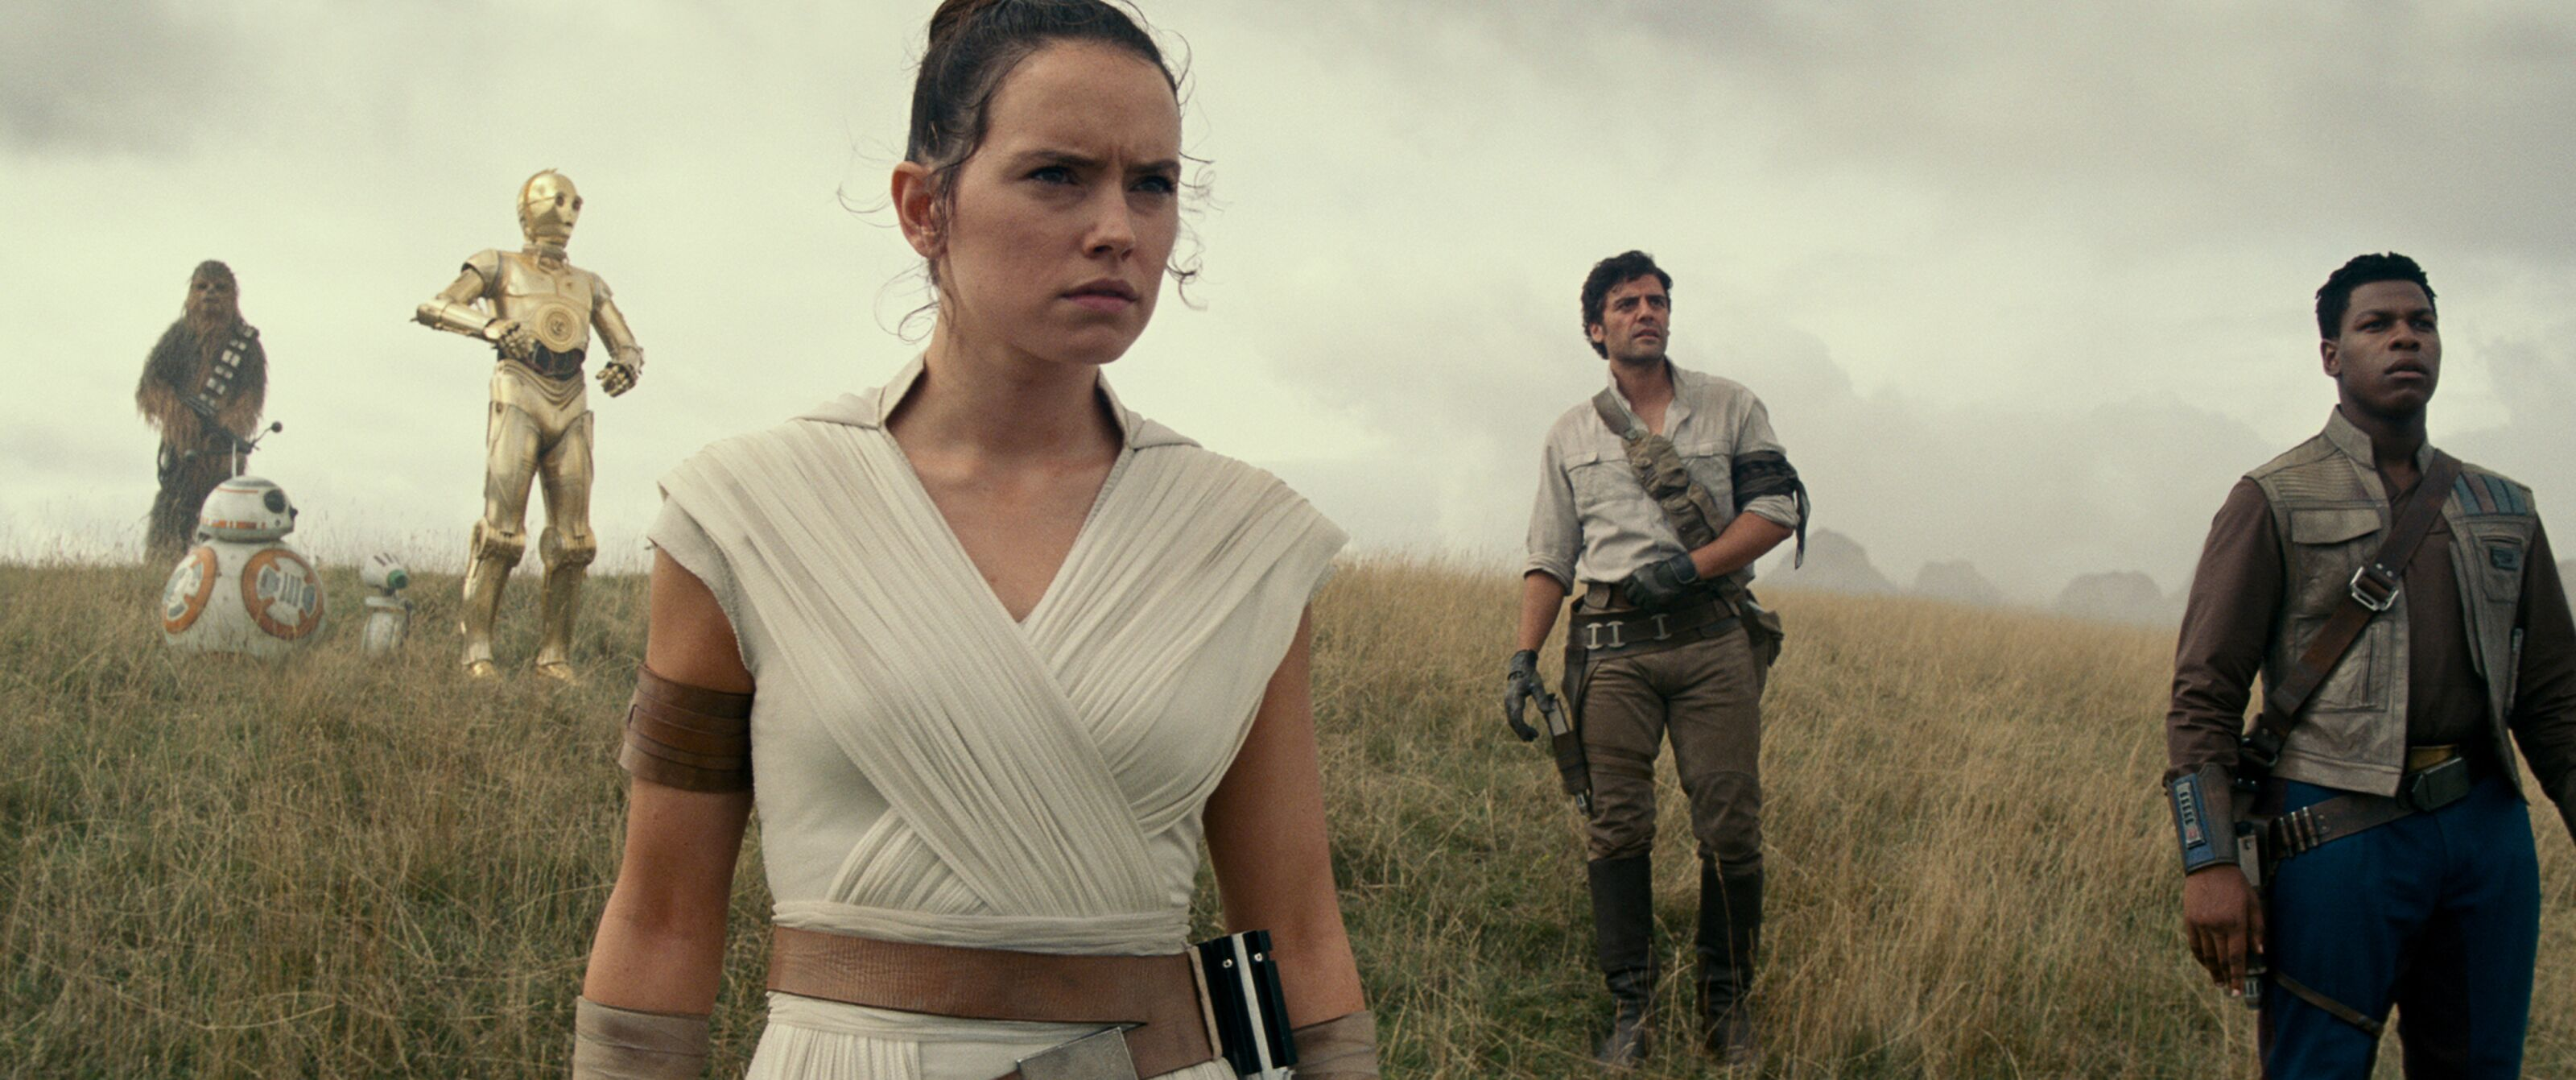 Star Wars: Episode IX: Is the rumored return of this character a good idea?